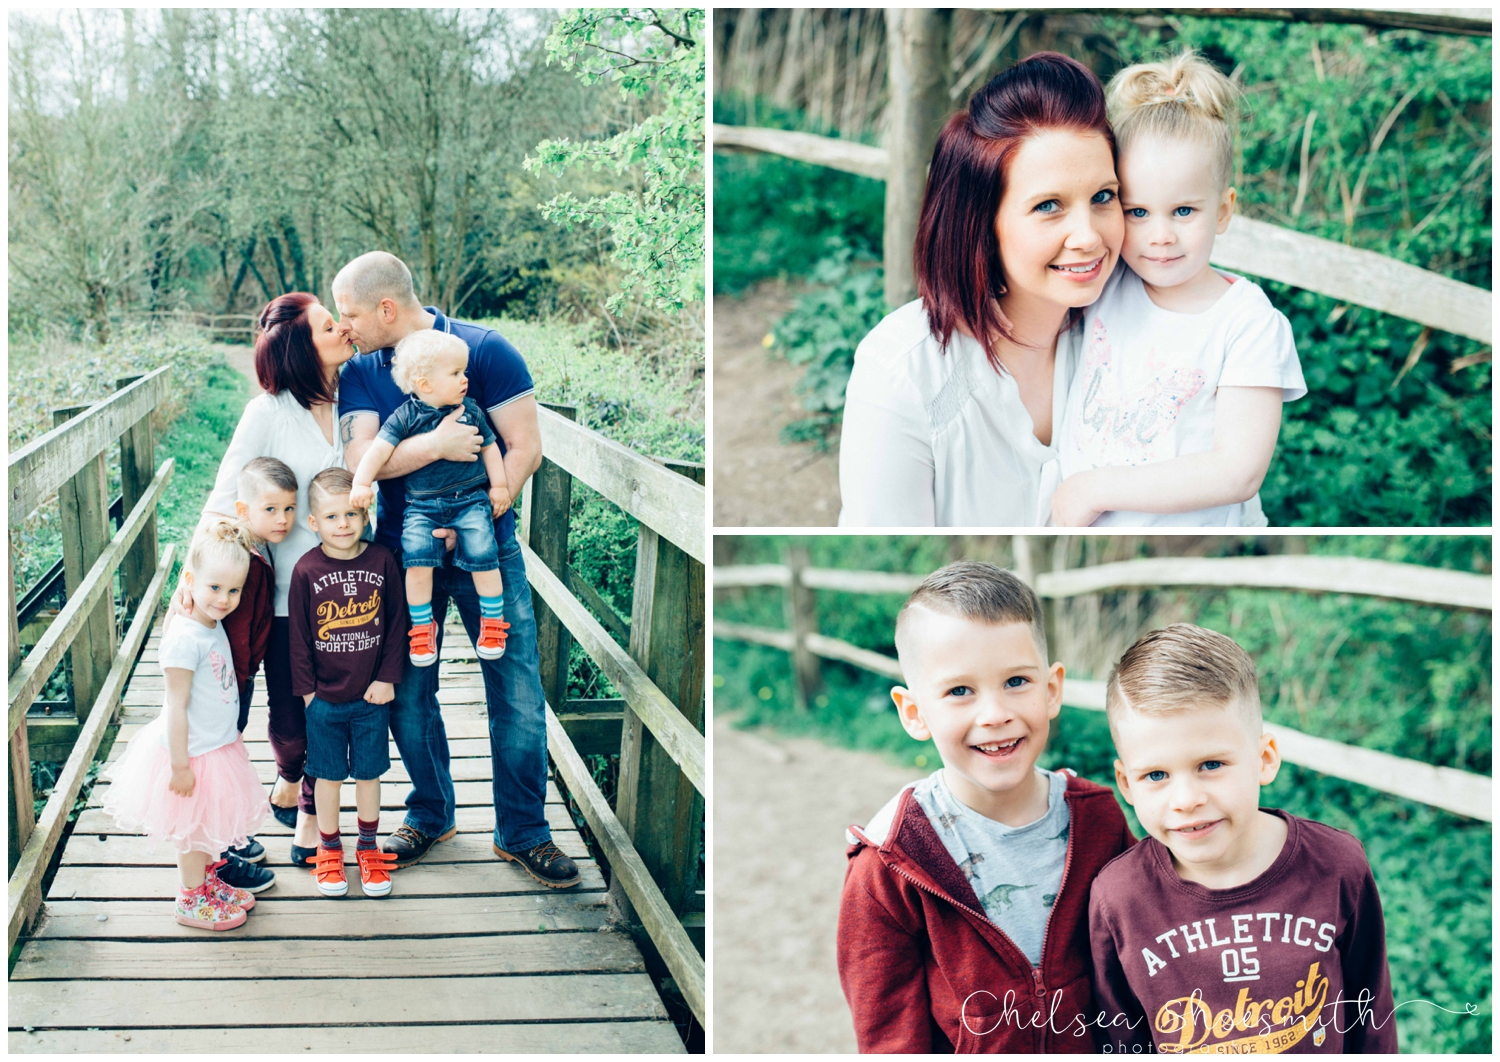 (24 of 72) Rigby Family Portrait Photography Quarry Bank Mill Styal Chelsea Shoesmith photography